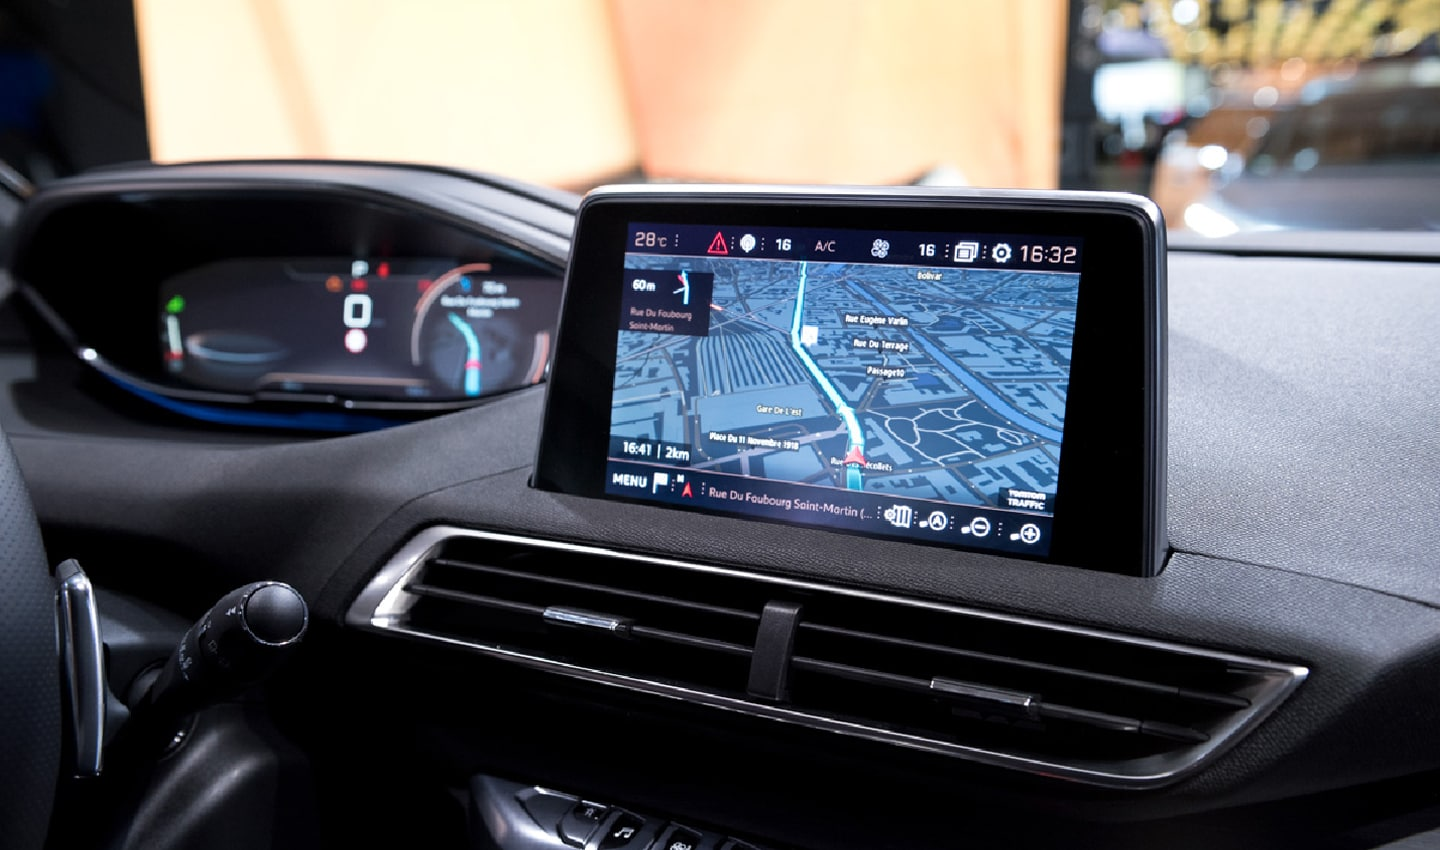 The TomTom powered digital cockpit in a Peugeot 308